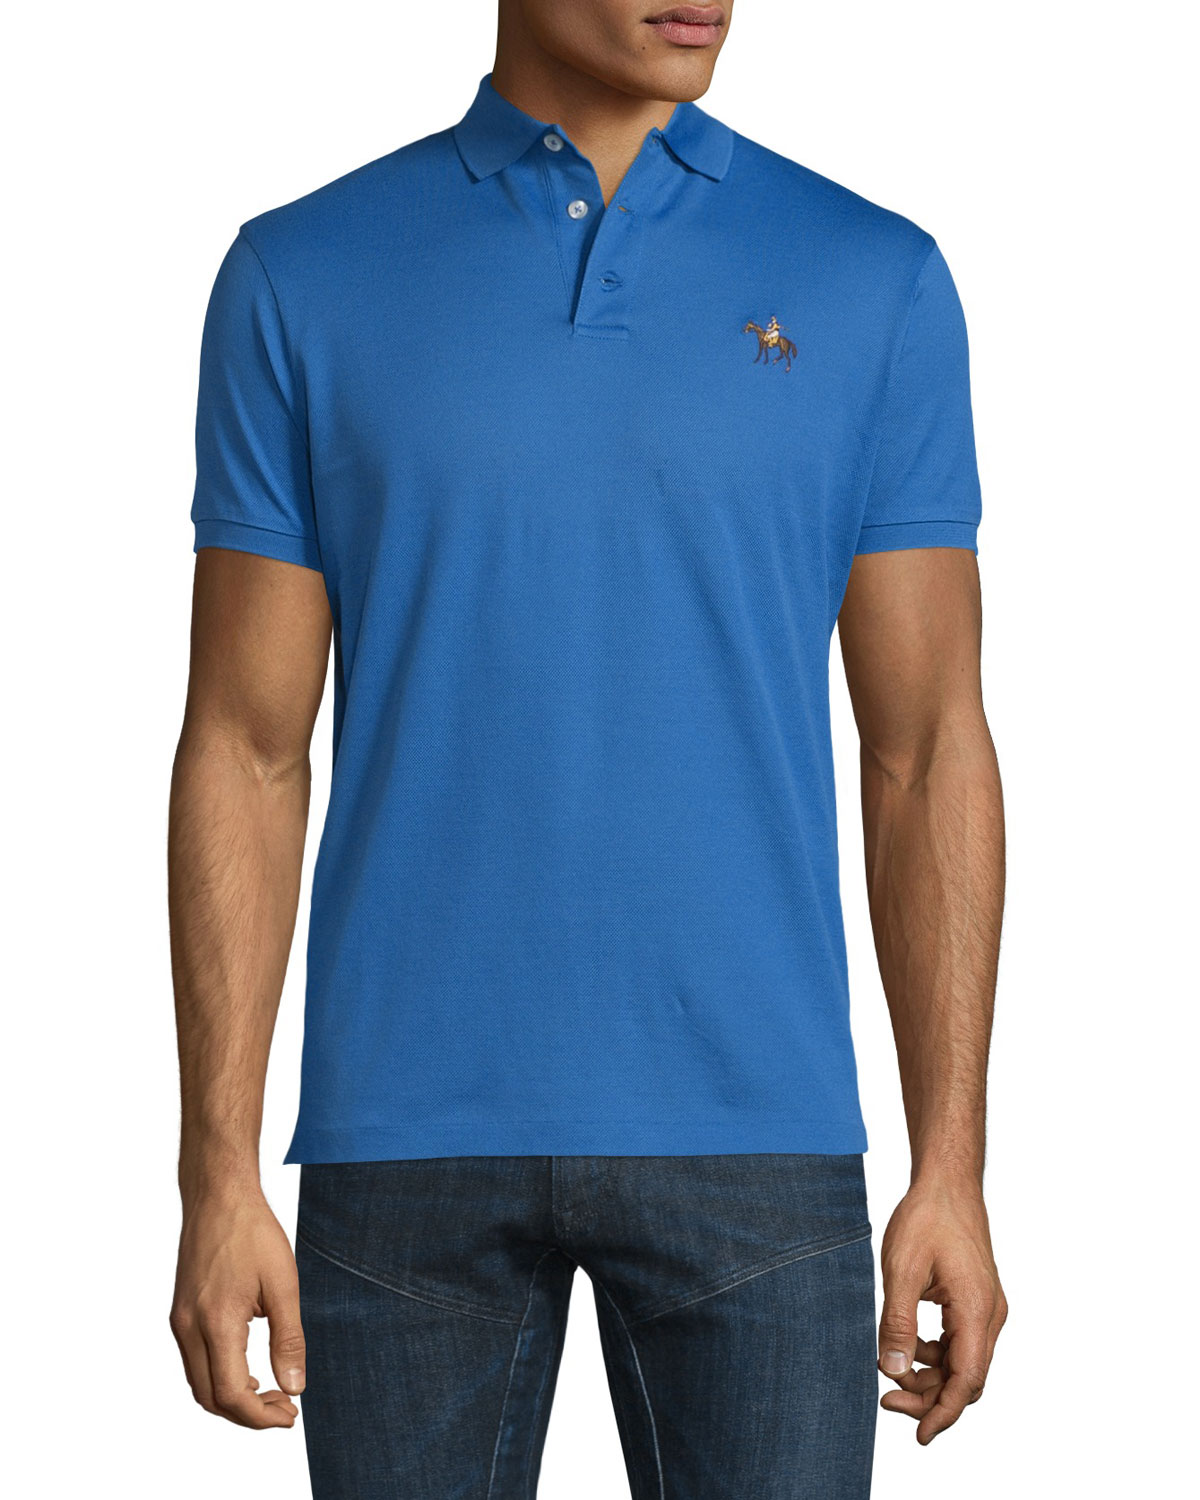 Pony-Embroidery Short-Sleeve Pique Polo Shirt, Blue